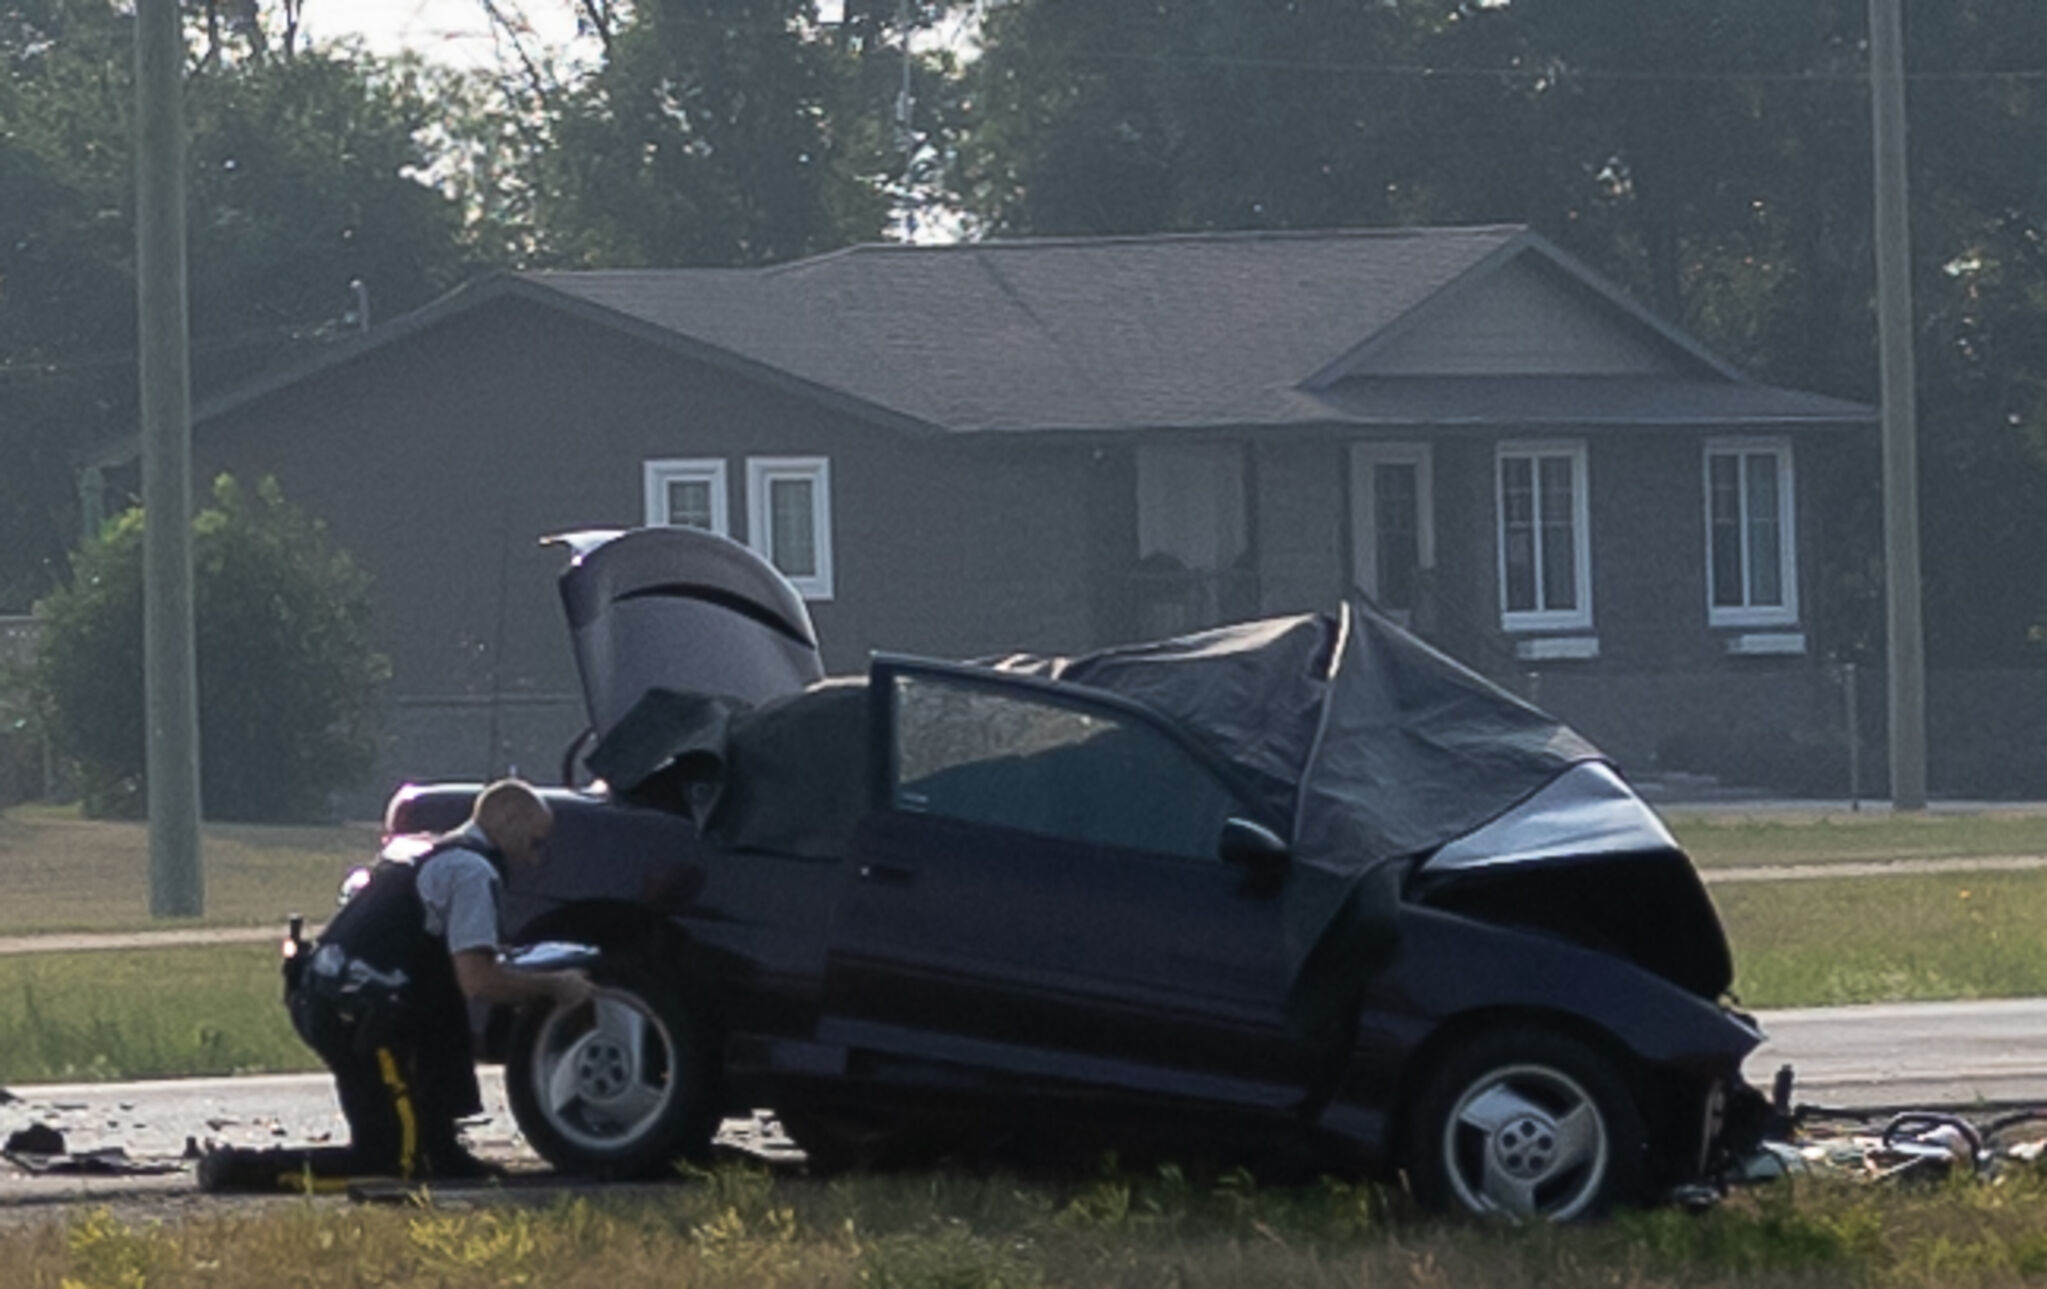 An RCMP officer examines one of the vehicles involved.